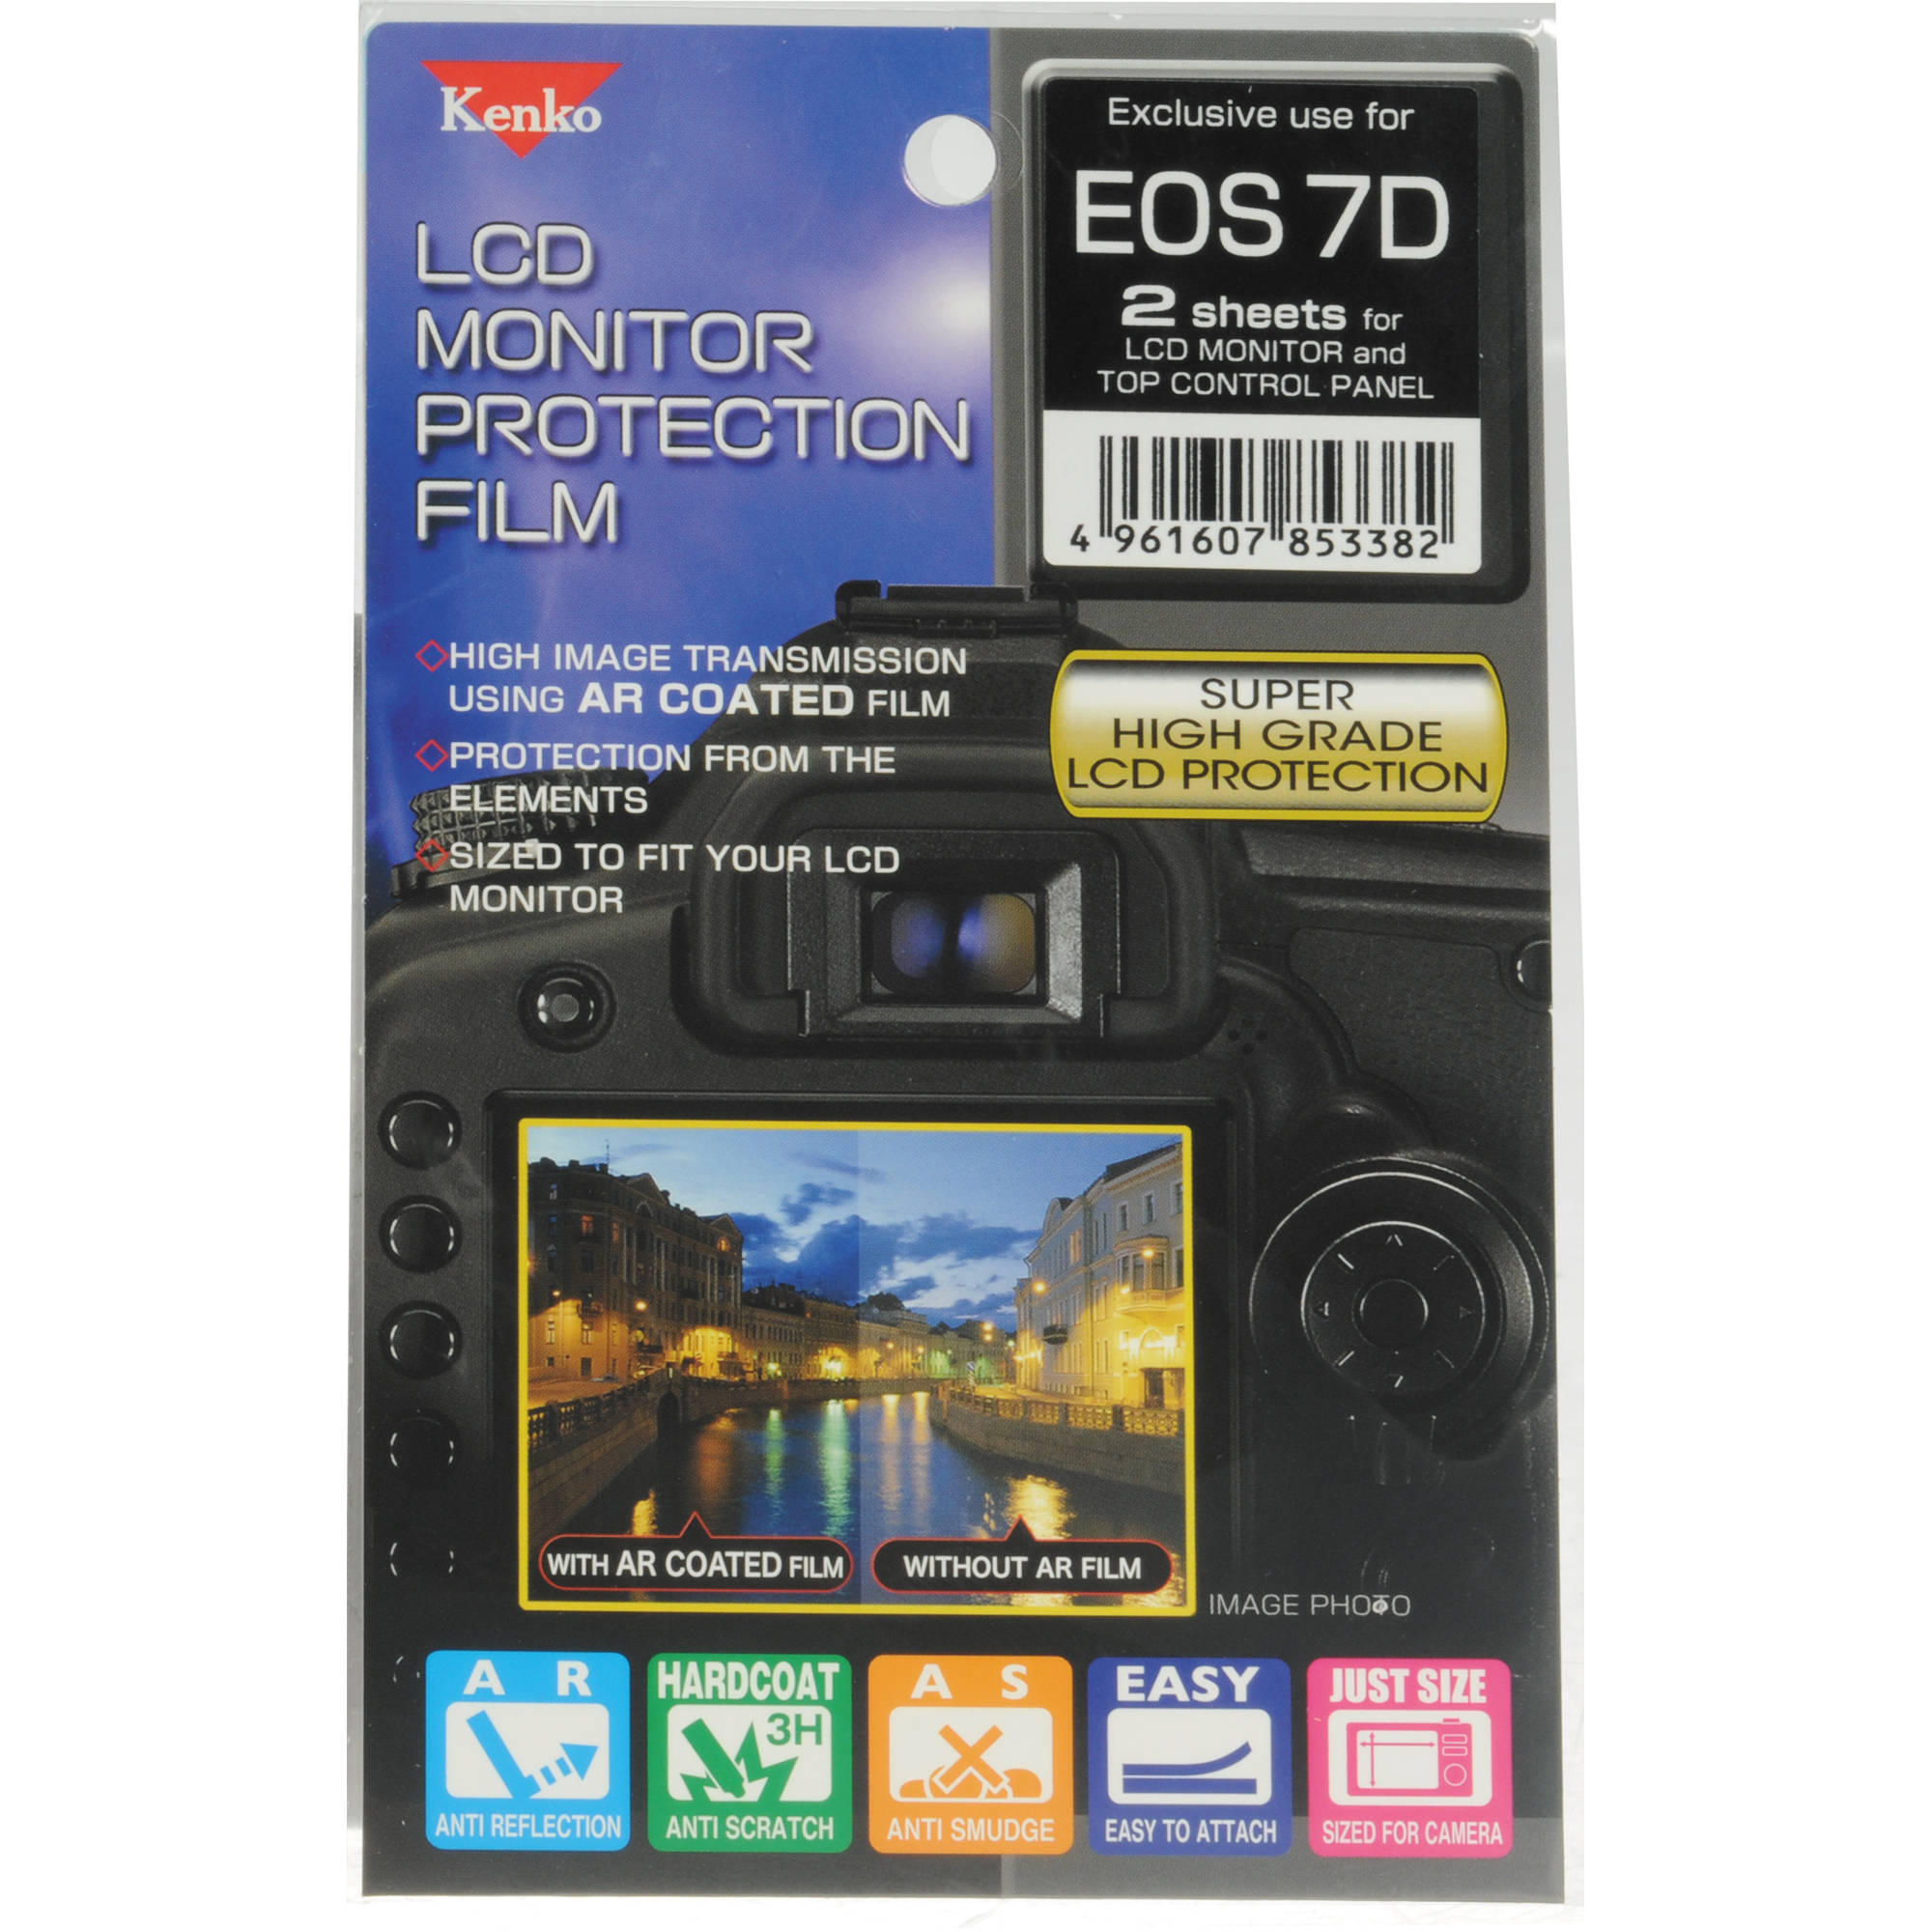 Kenko LCD Monitor Protection Film for the Canon EOS 7D Camera